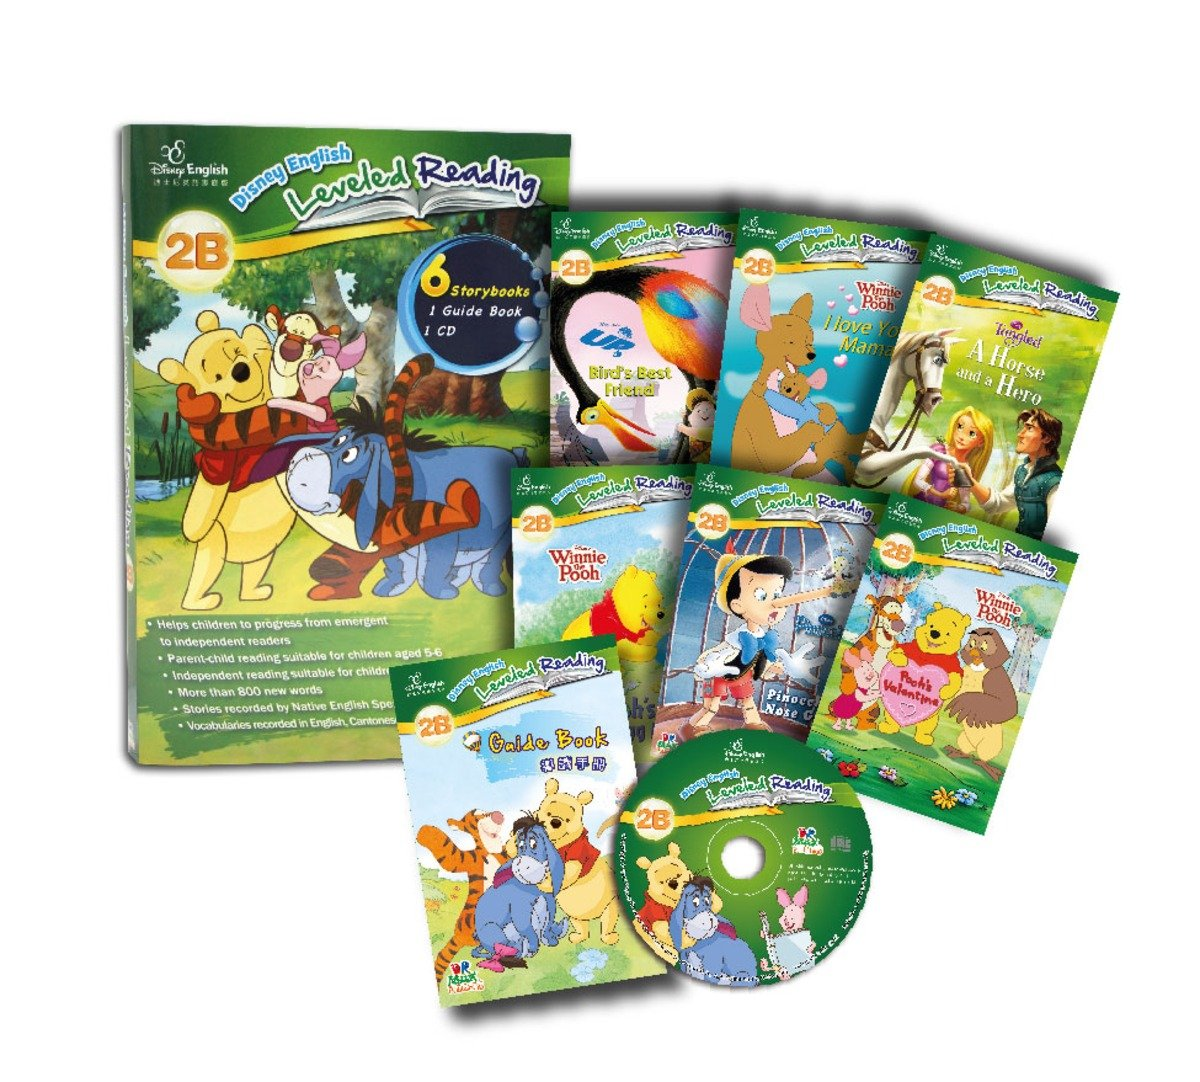 Disney English Leveled Reading 2B